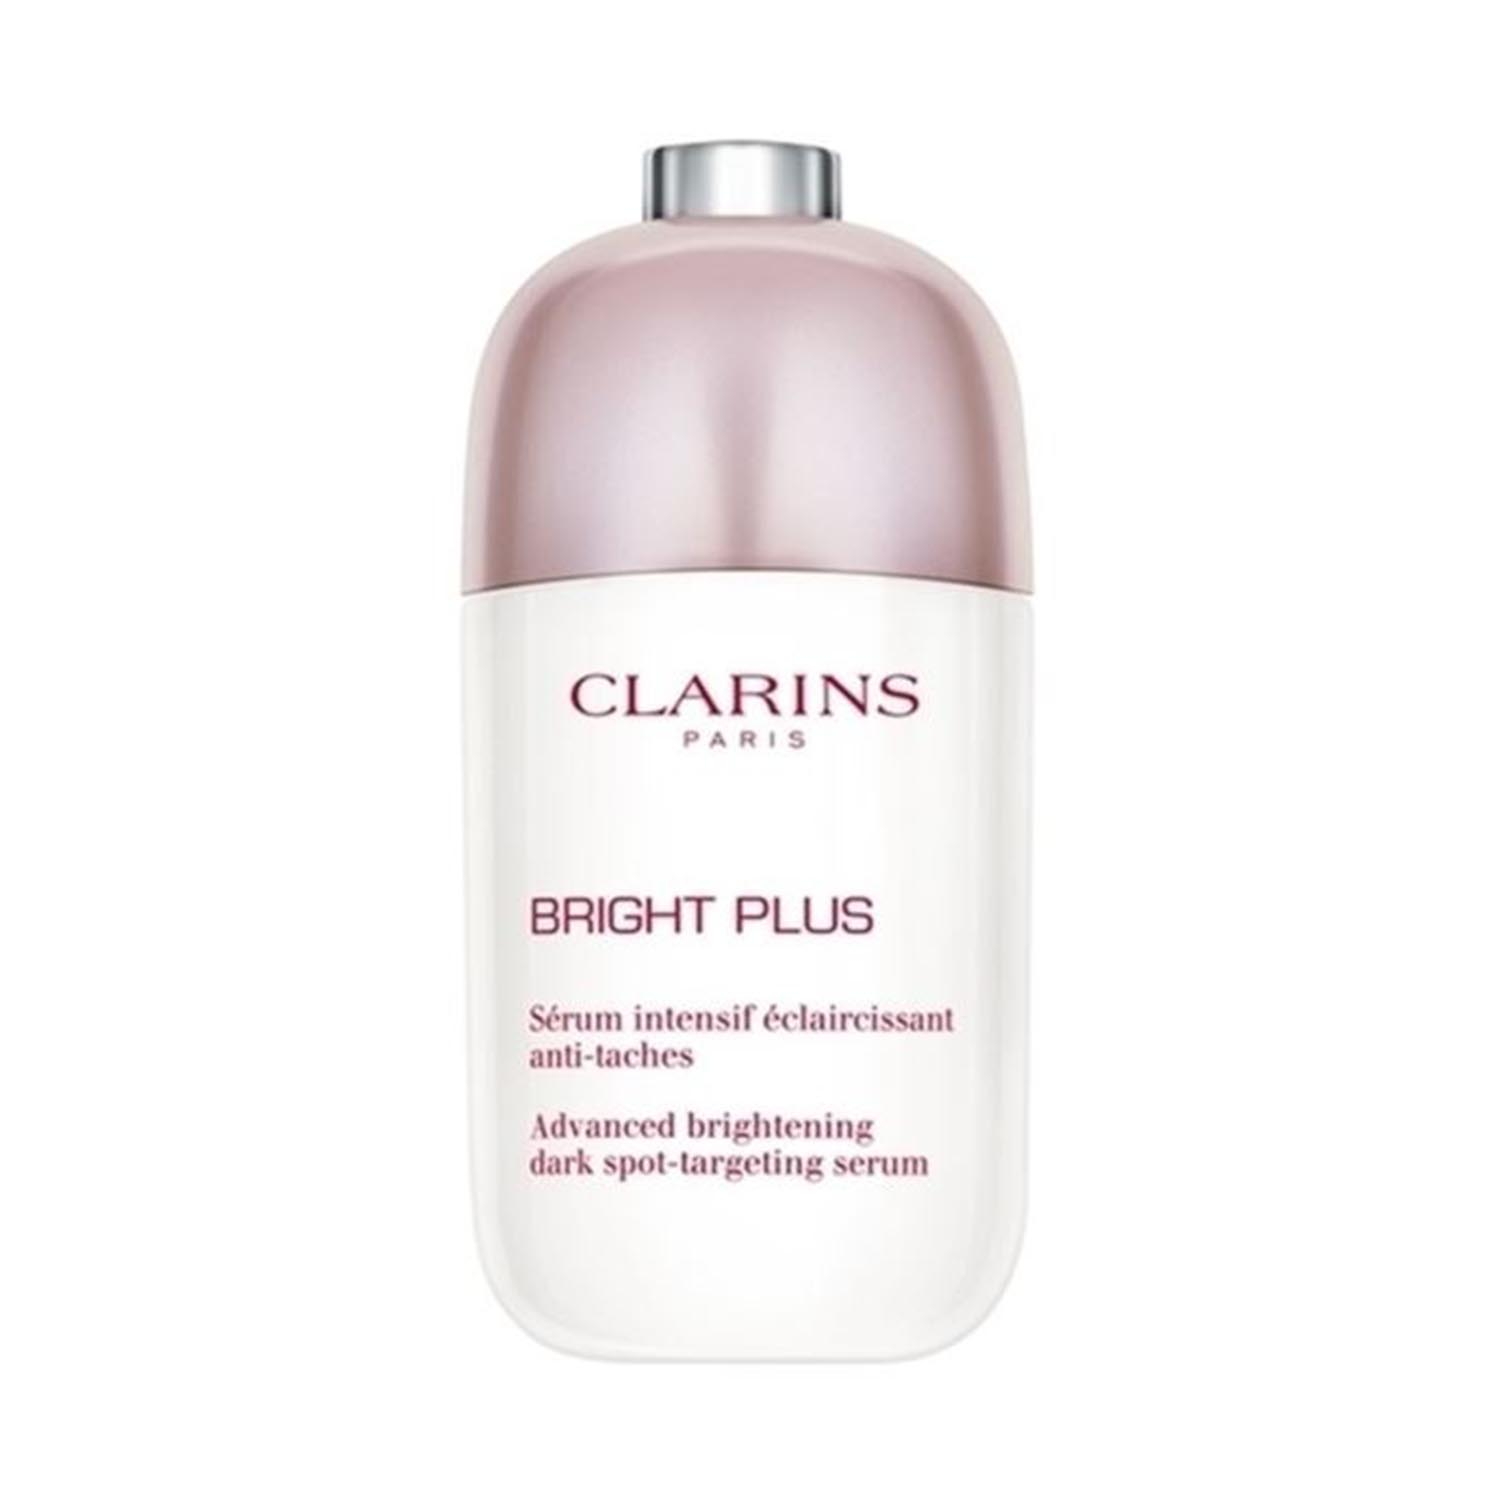 Clarins bright plus serum 50ml - BellezaMagica.com